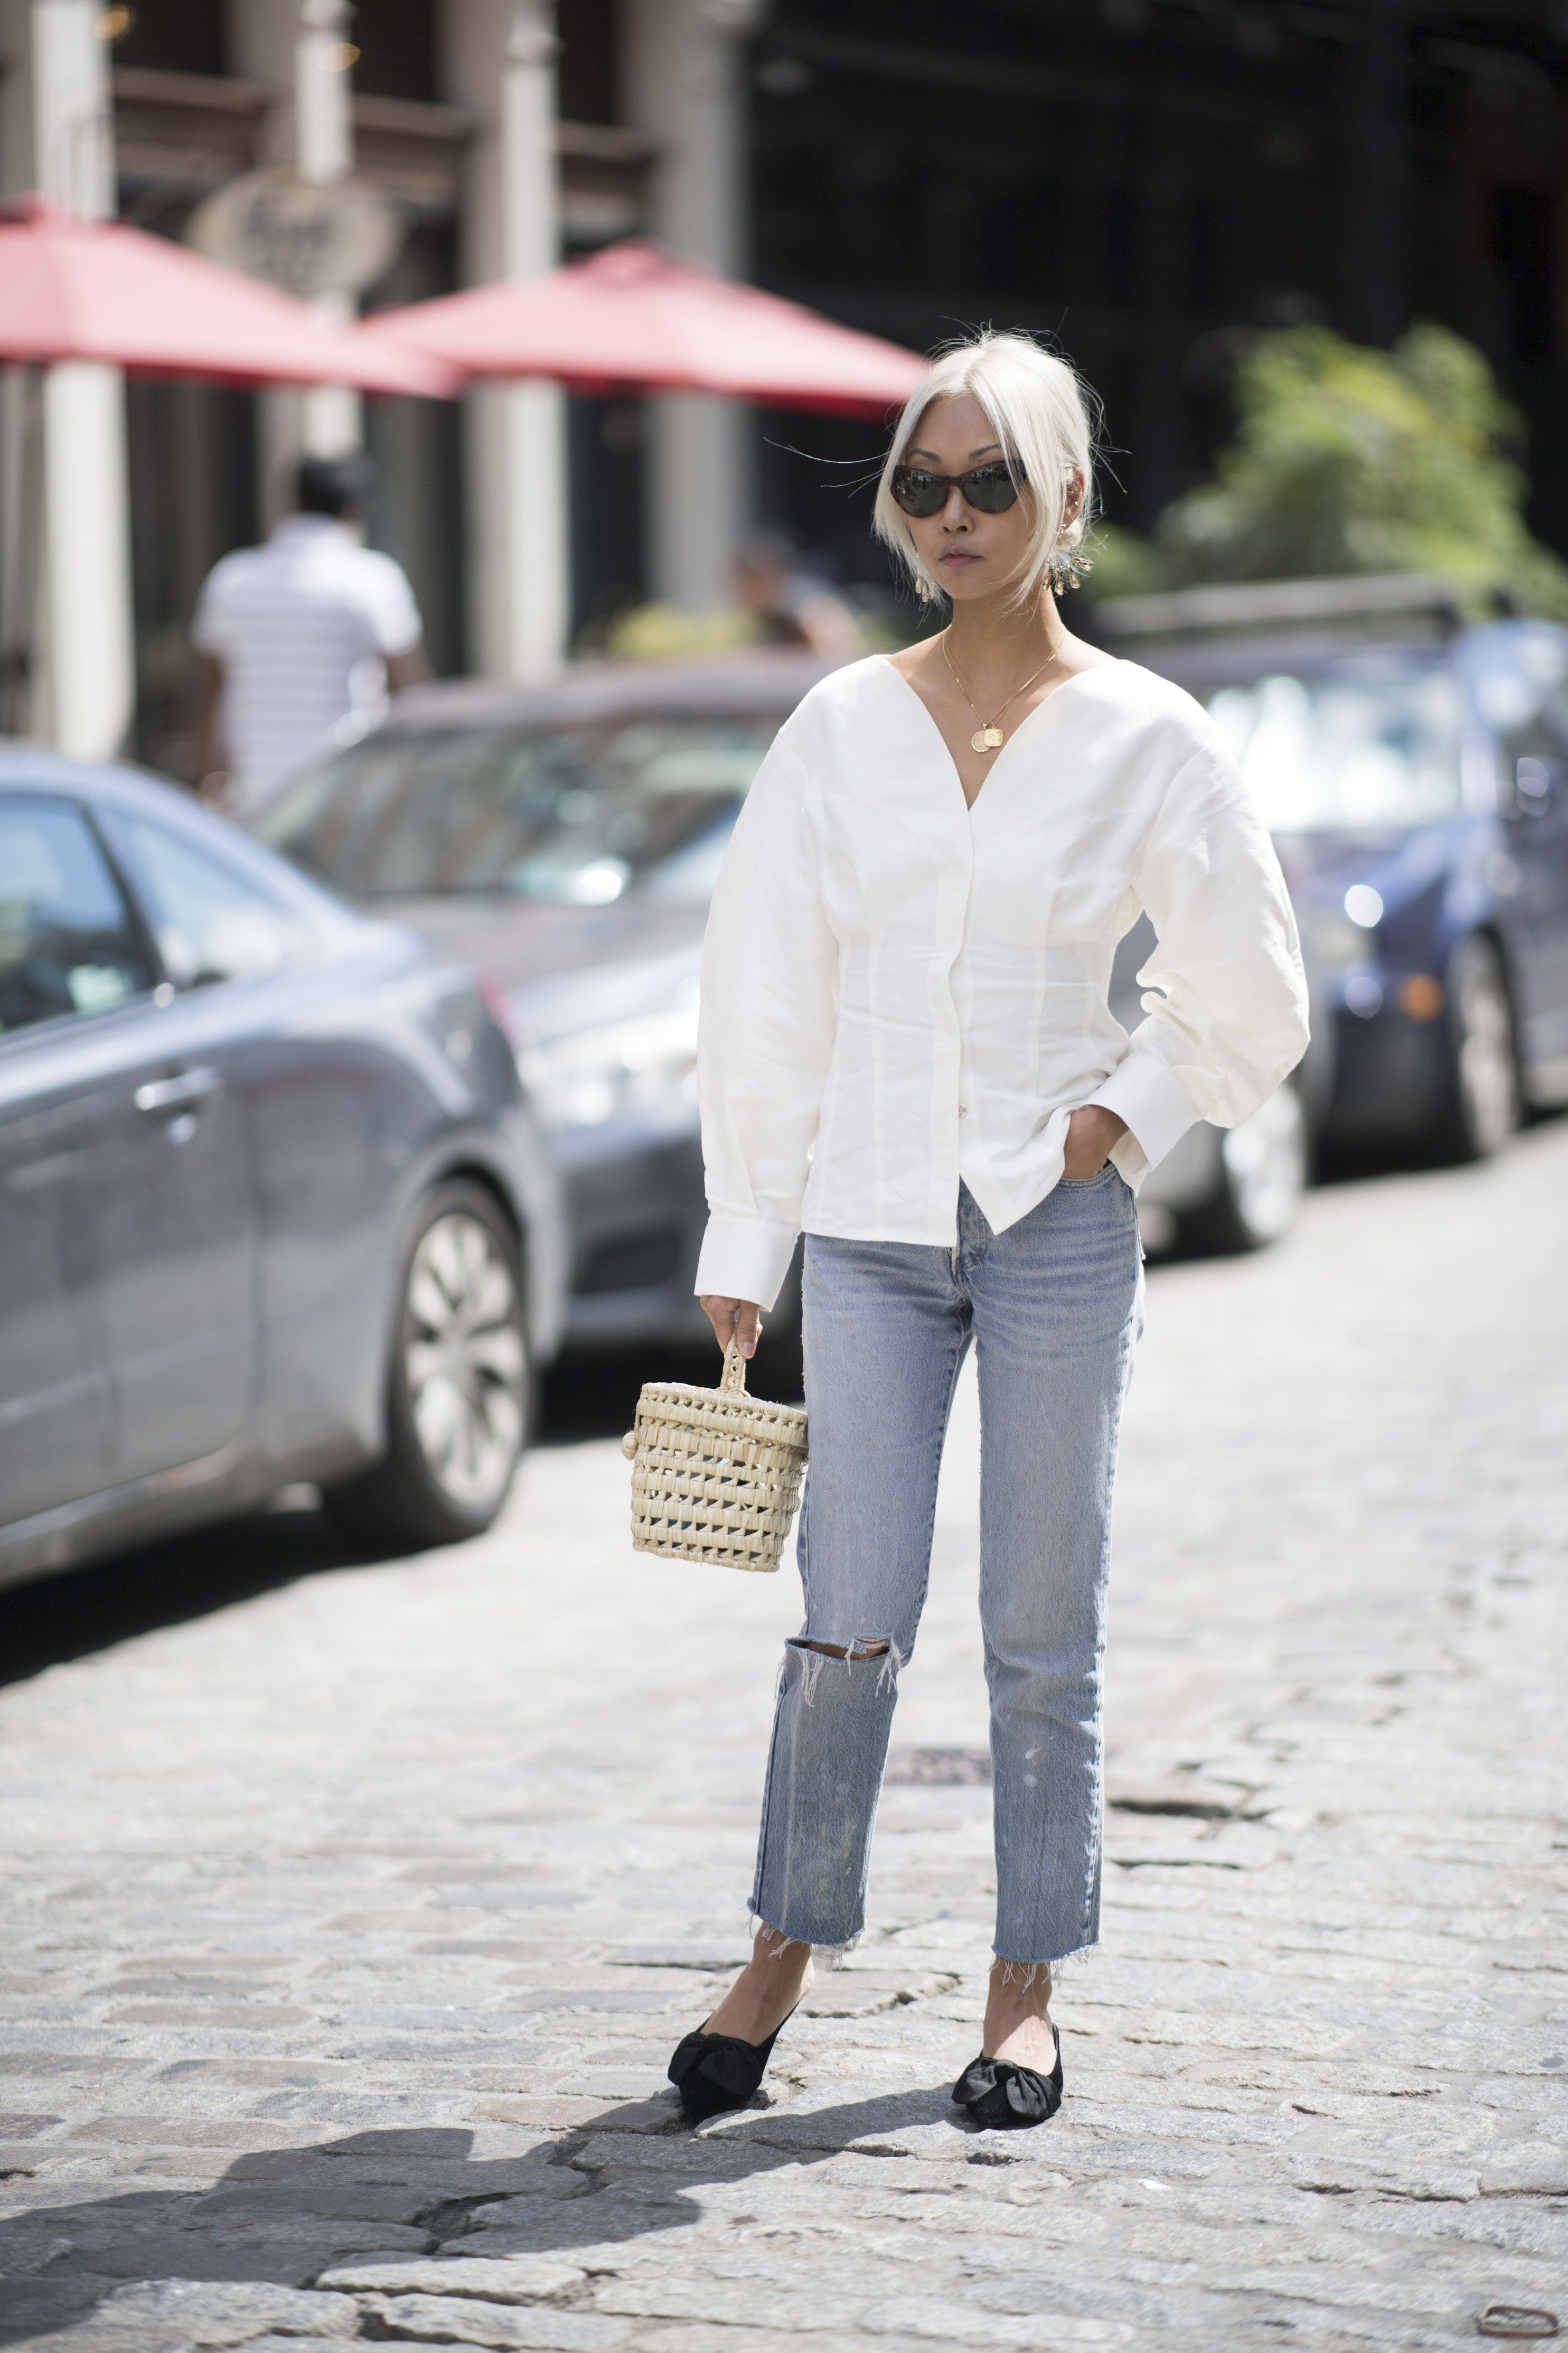 Fall Fashion: 30 Cool Ways to Wear Baby Blue this Fall Fall Fashion: 30 Cool Ways to Wear Baby Blue this Fall new picture